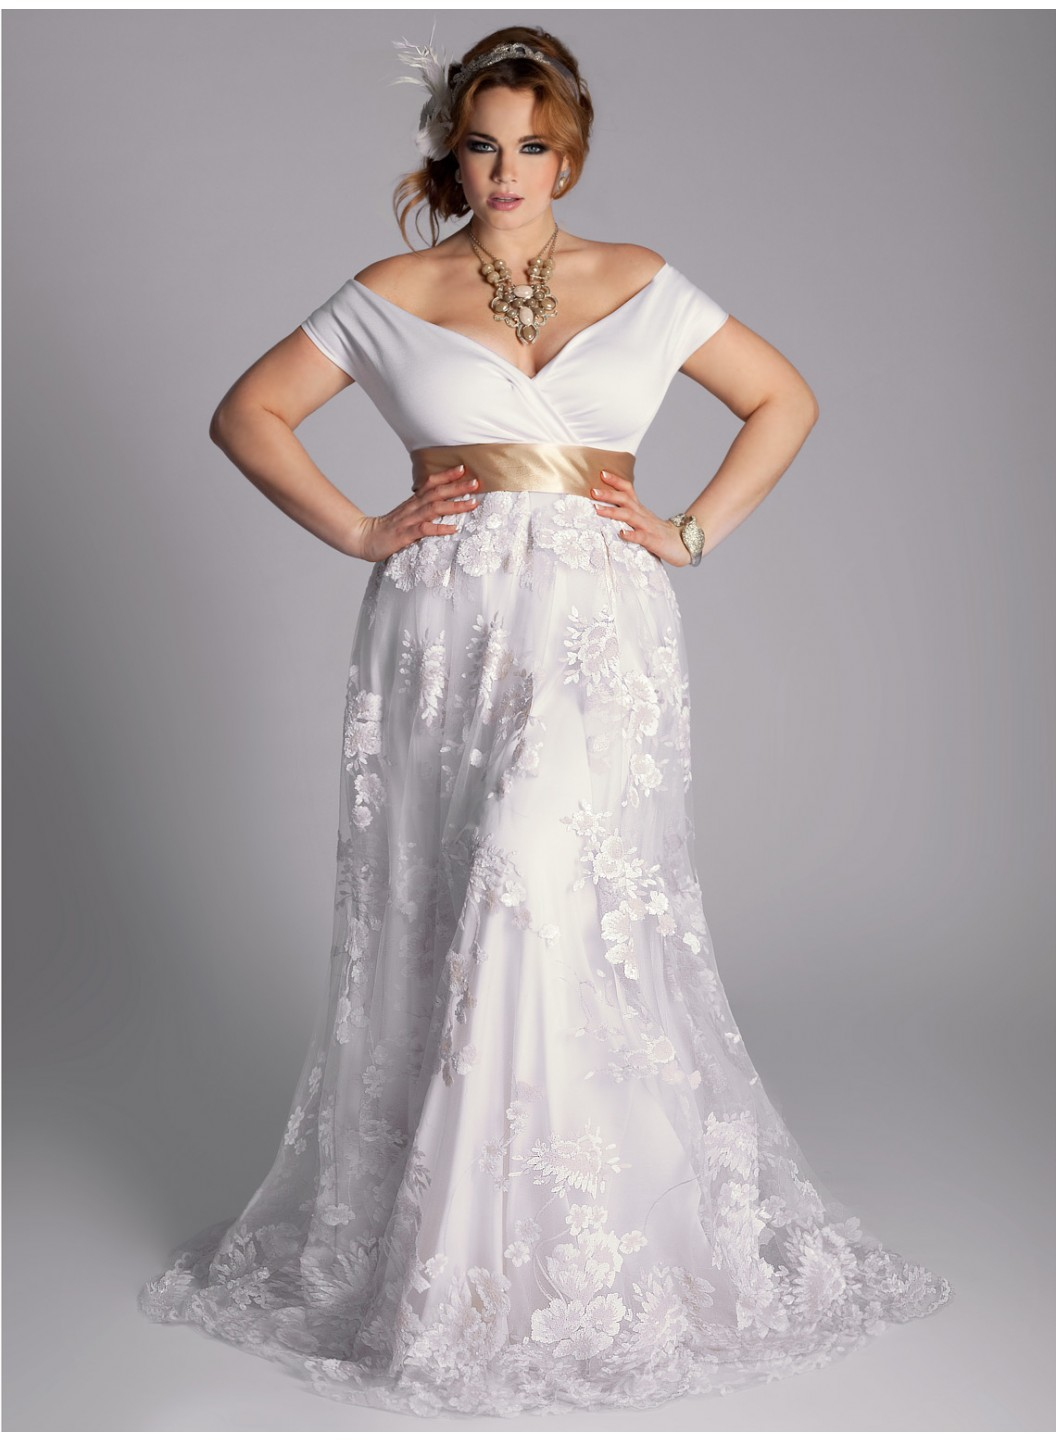 plus size attire david's bridal